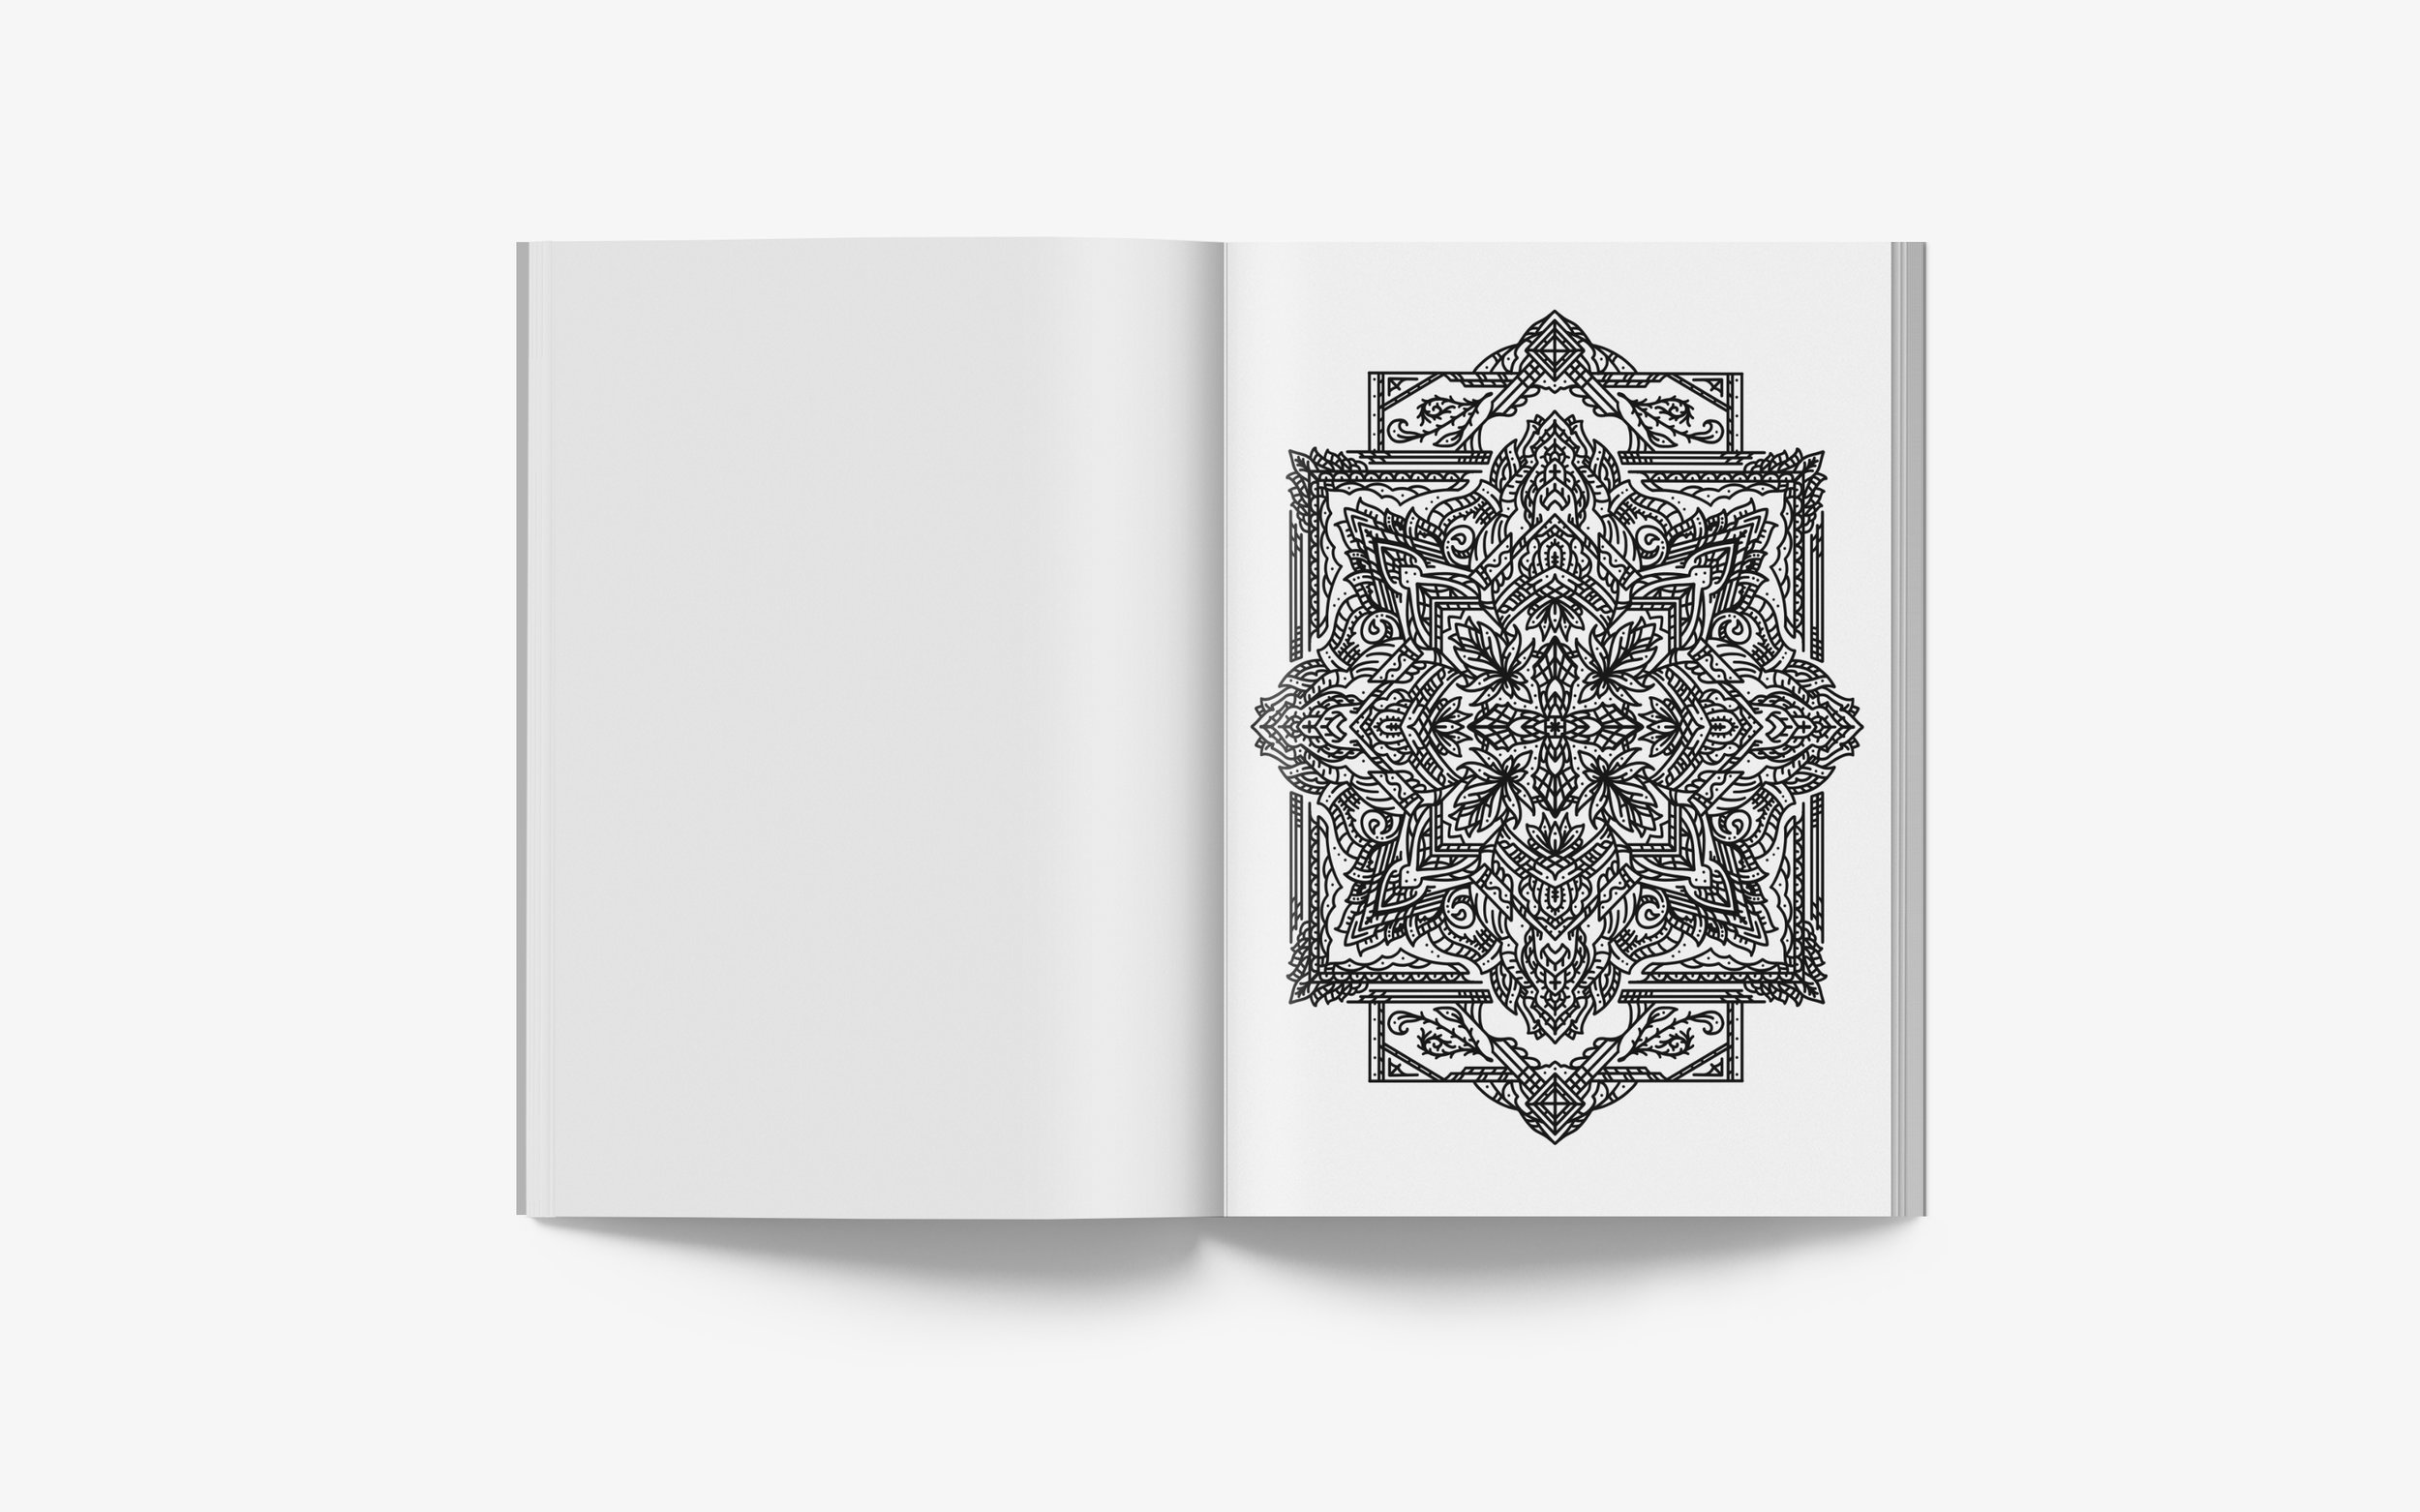 mx-coloringbook-v1-showcase-pages-1.1.jpg